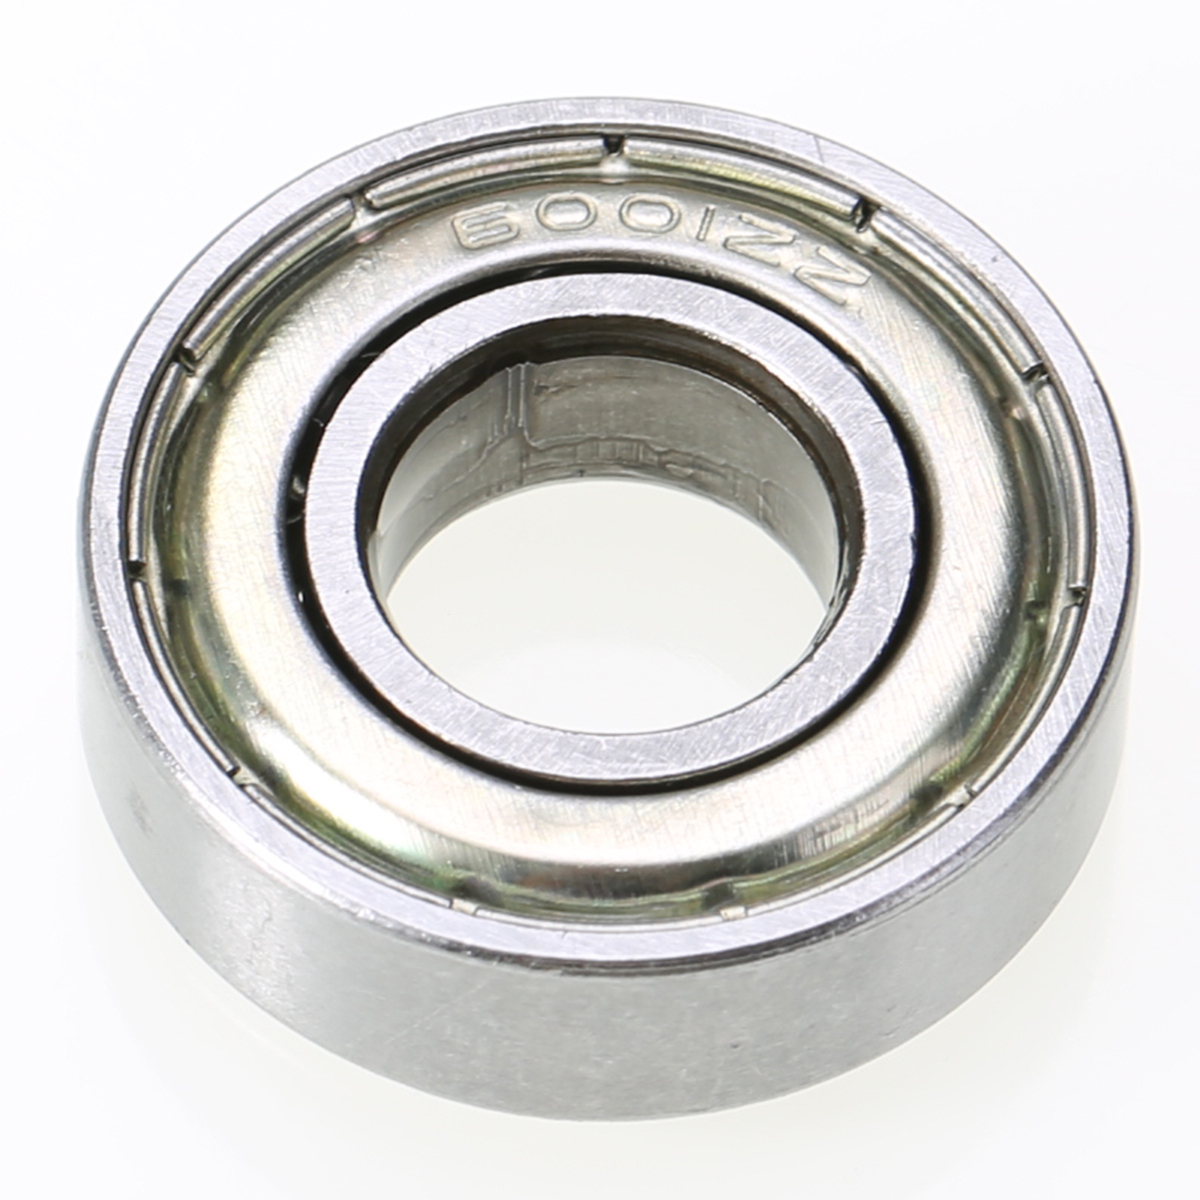 5pcs Mayitr Miniature Deep Groove Radial Bearings High Precision 6001ZZ Shielded Ball Bearing 12*28*8mm for Electric Motors Whee gcr15 6224 zz or 6224 2rs 120x215x40mm high precision deep groove ball bearings abec 1 p0